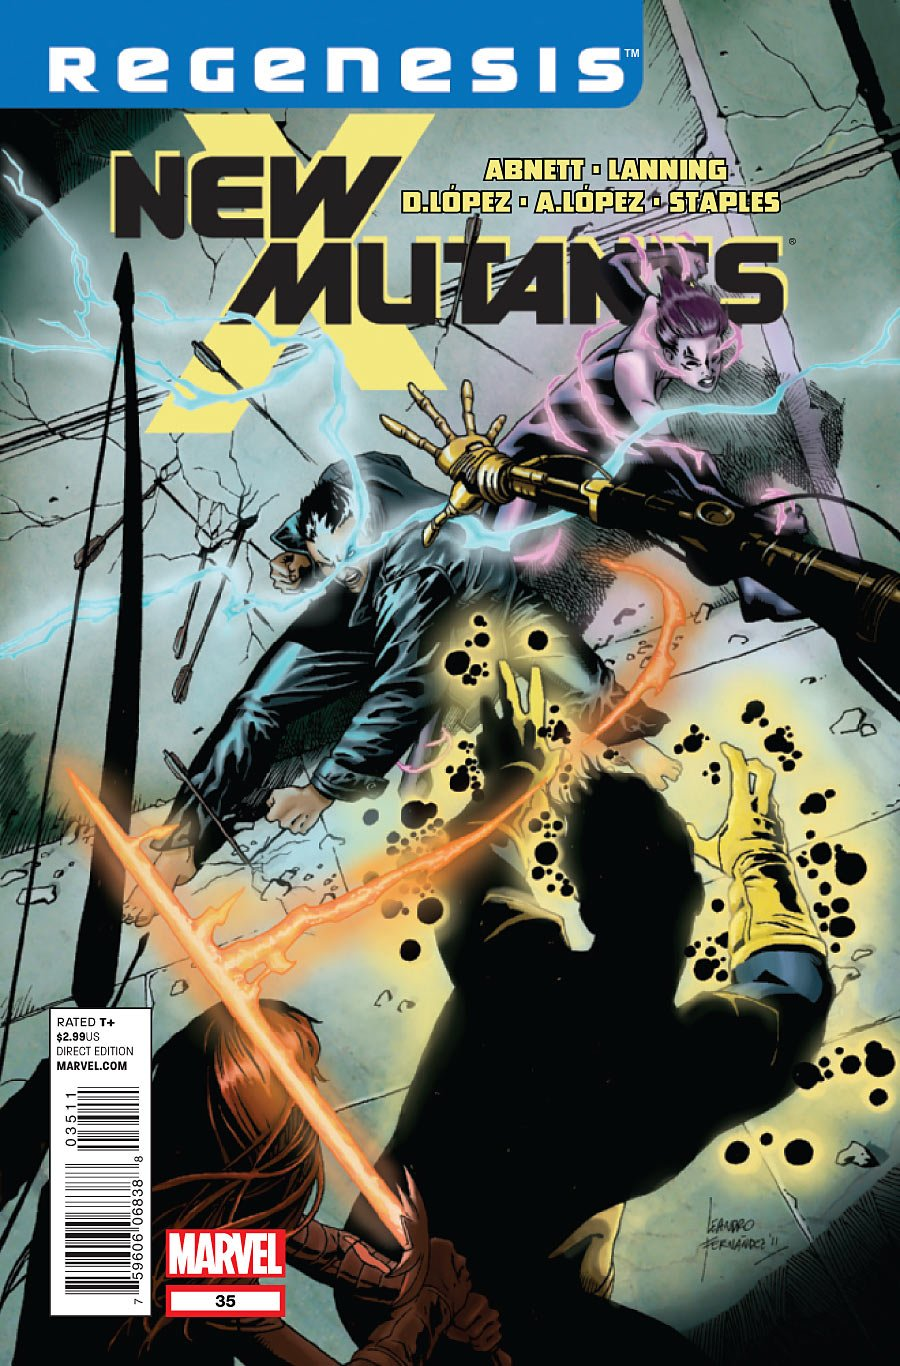 """Read Online New Mutants #35 """"X-men Regenesis on a Mission to Track Down the Runaway Mutant Known As Blink the Team Runs Smack Into Chaotic Forces Summoned By a Band of Death Metal Rockers"""" pdf epub"""